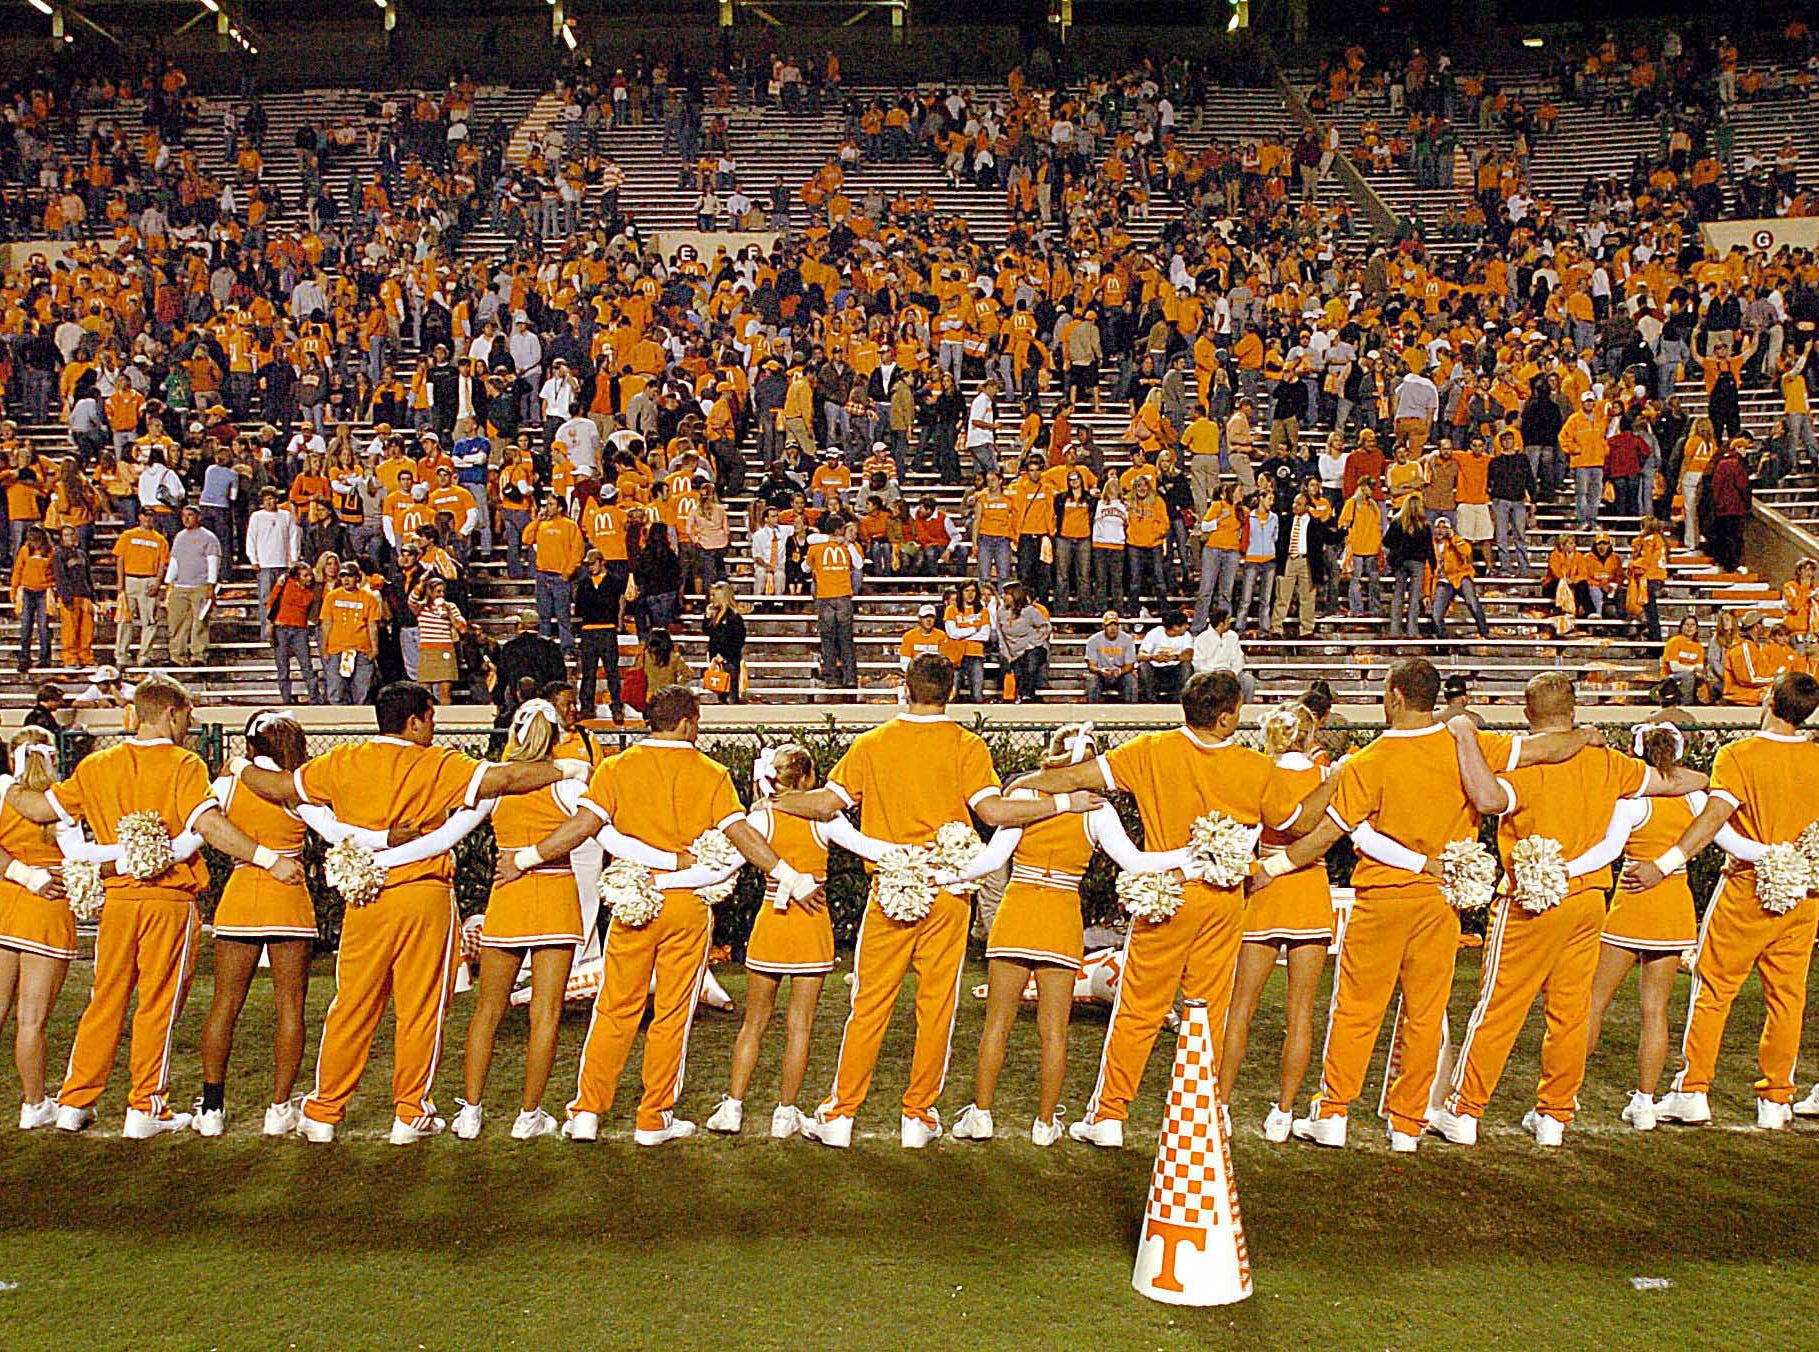 University of Tennessee cheerleaders sway to the school song at the conclusion of the game Saturday night at Neyland Stadium.   11/6/2004